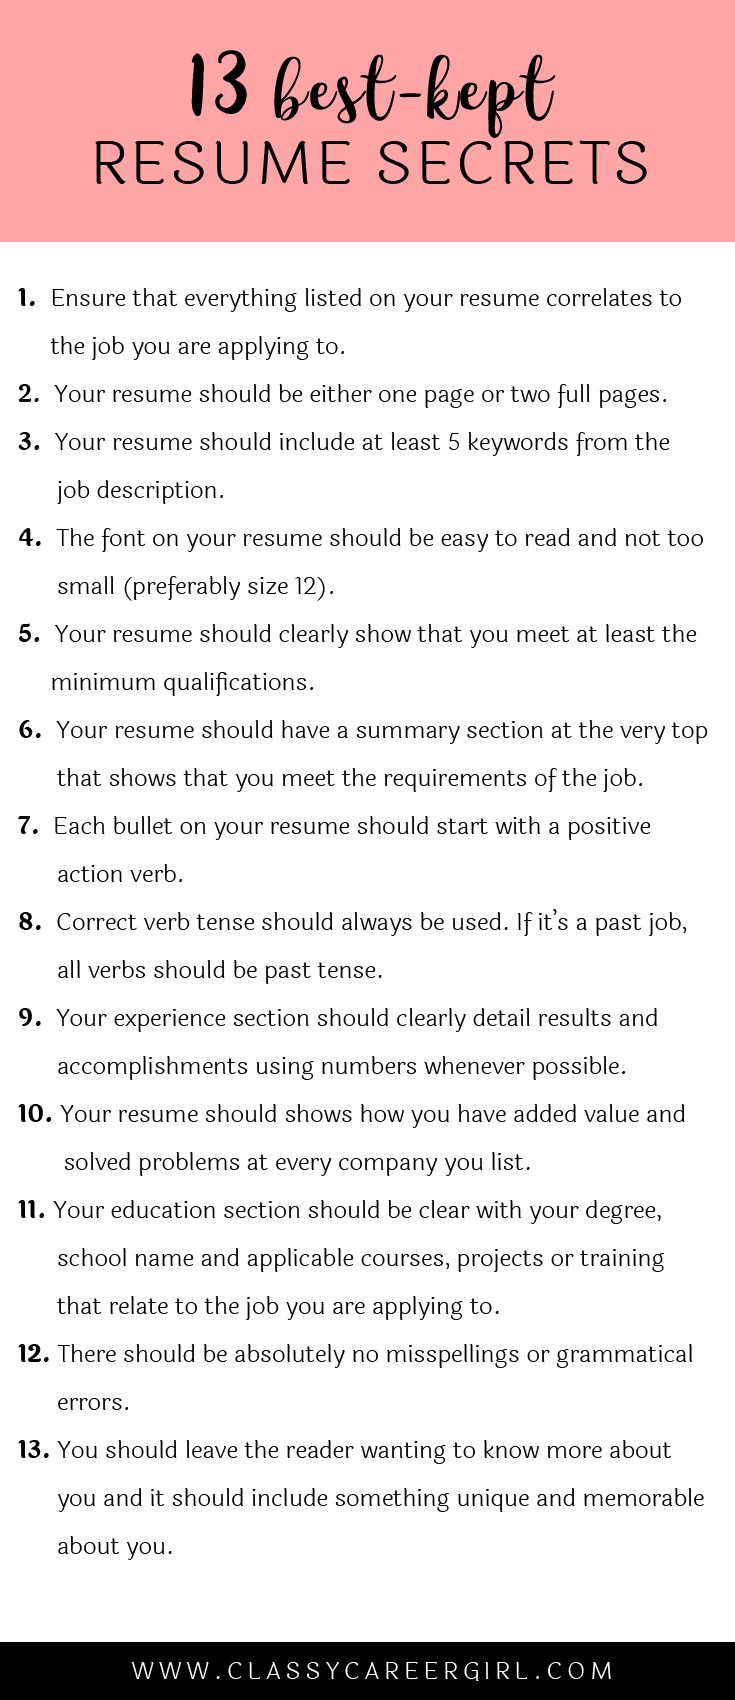 Opposenewapstandardsus  Pretty  Ideas About Resume On Pinterest  Cv Format Resume Cv And  With Likable Some Hiring Managers Will Toss Your Resume Out If You Dont Know These  With Endearing Resume Experts Also Read Write Think Resume In Addition How To Do A Professional Resume And Google Drive Resume Templates As Well As Entry Level Marketing Resume Additionally Where To Put Gpa On Resume From Pinterestcom With Opposenewapstandardsus  Likable  Ideas About Resume On Pinterest  Cv Format Resume Cv And  With Endearing Some Hiring Managers Will Toss Your Resume Out If You Dont Know These  And Pretty Resume Experts Also Read Write Think Resume In Addition How To Do A Professional Resume From Pinterestcom